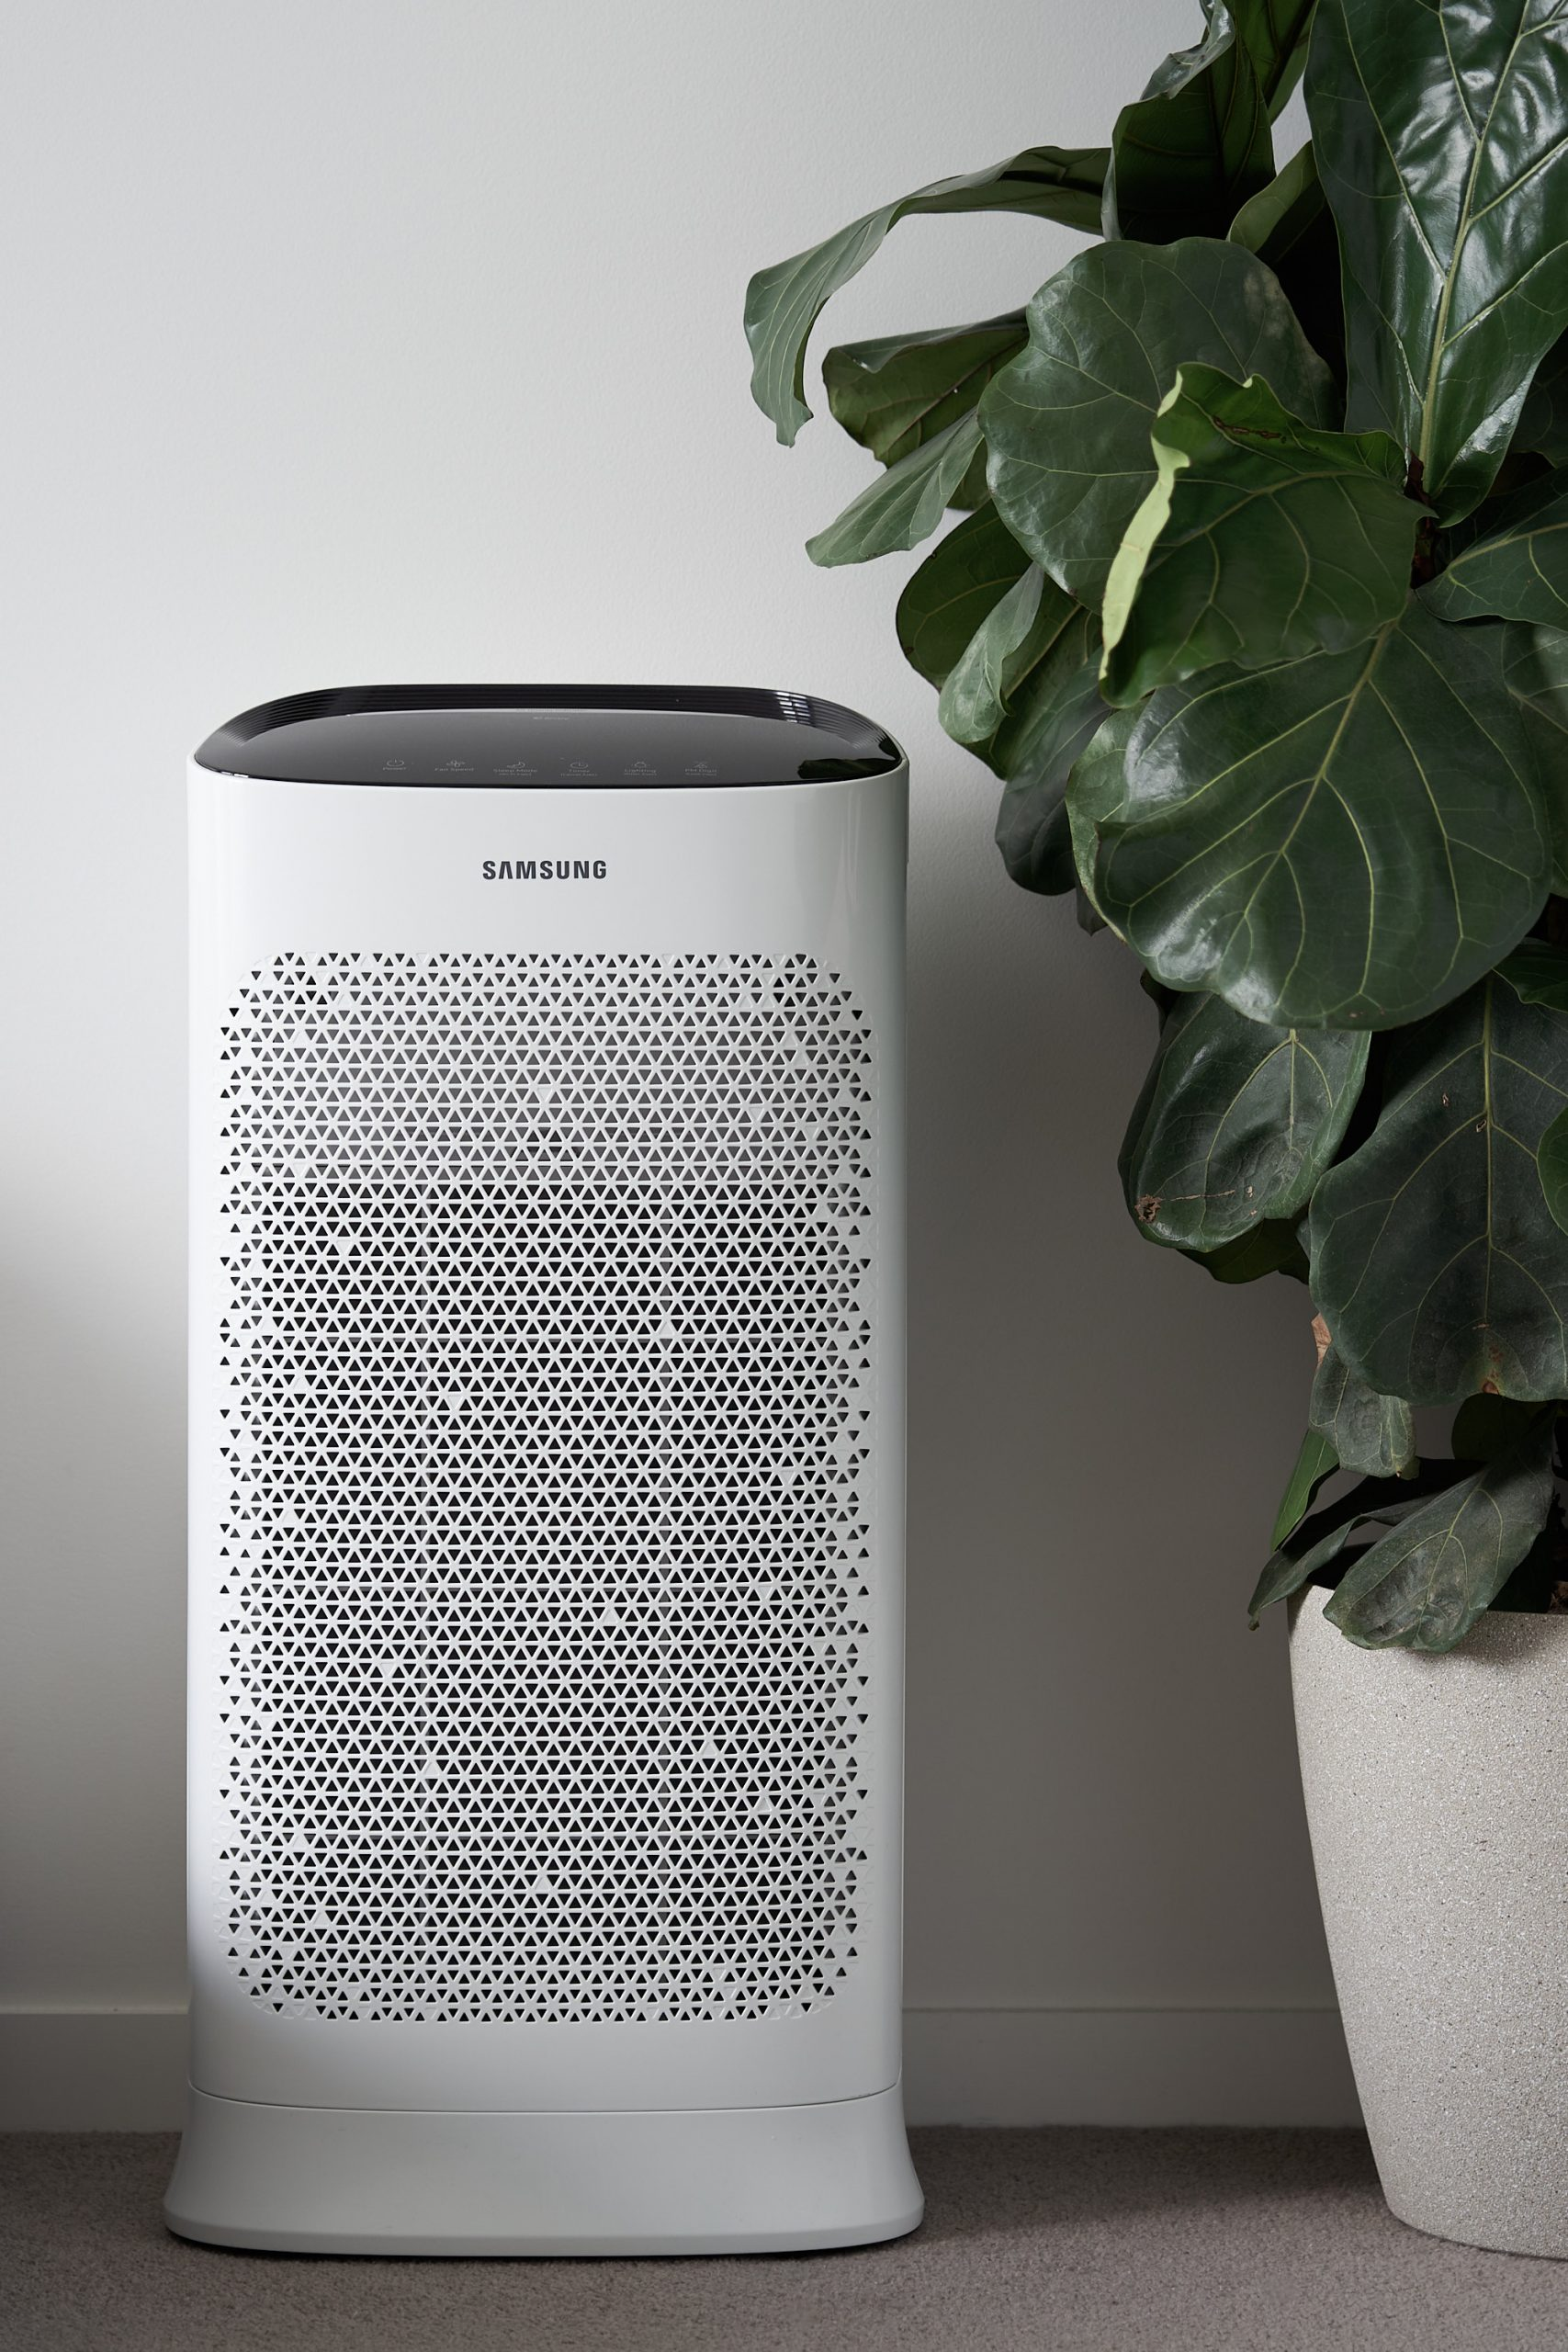 How To Get A Good Night's Sleep - Samsung AX5500K Air Purifier - HEY GENTS